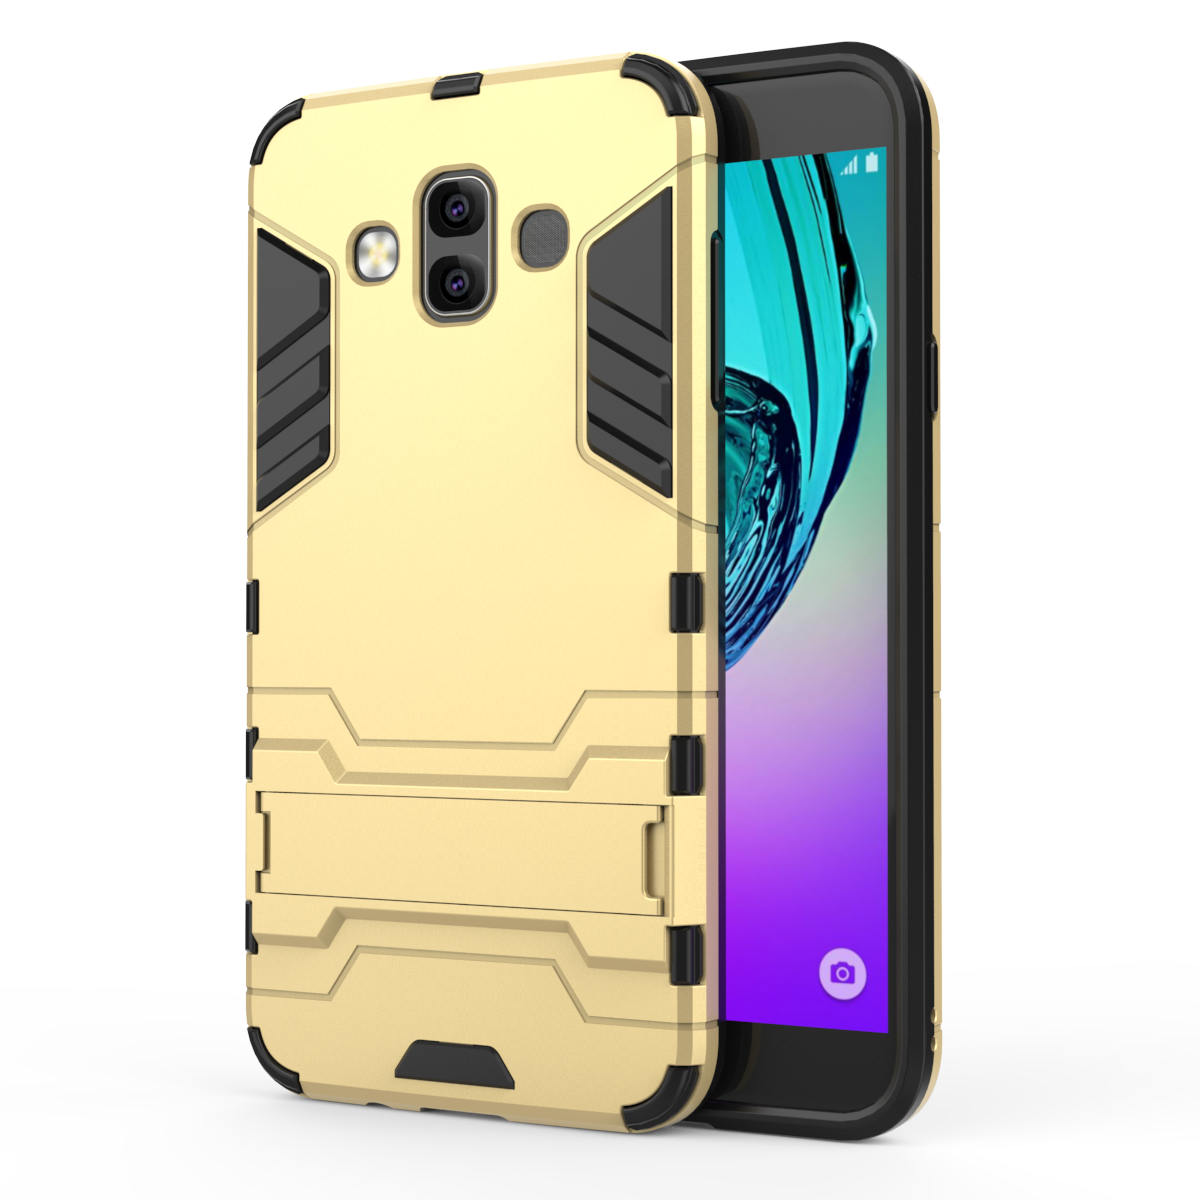 Armor Stand Cover Case For Samsung Galaxy S9 S8 S7 S5 S6 Edge Plus Note 9 8 5 4 Case J8 2018 J6 J7 2017 2016 Prime Max Duo Bags